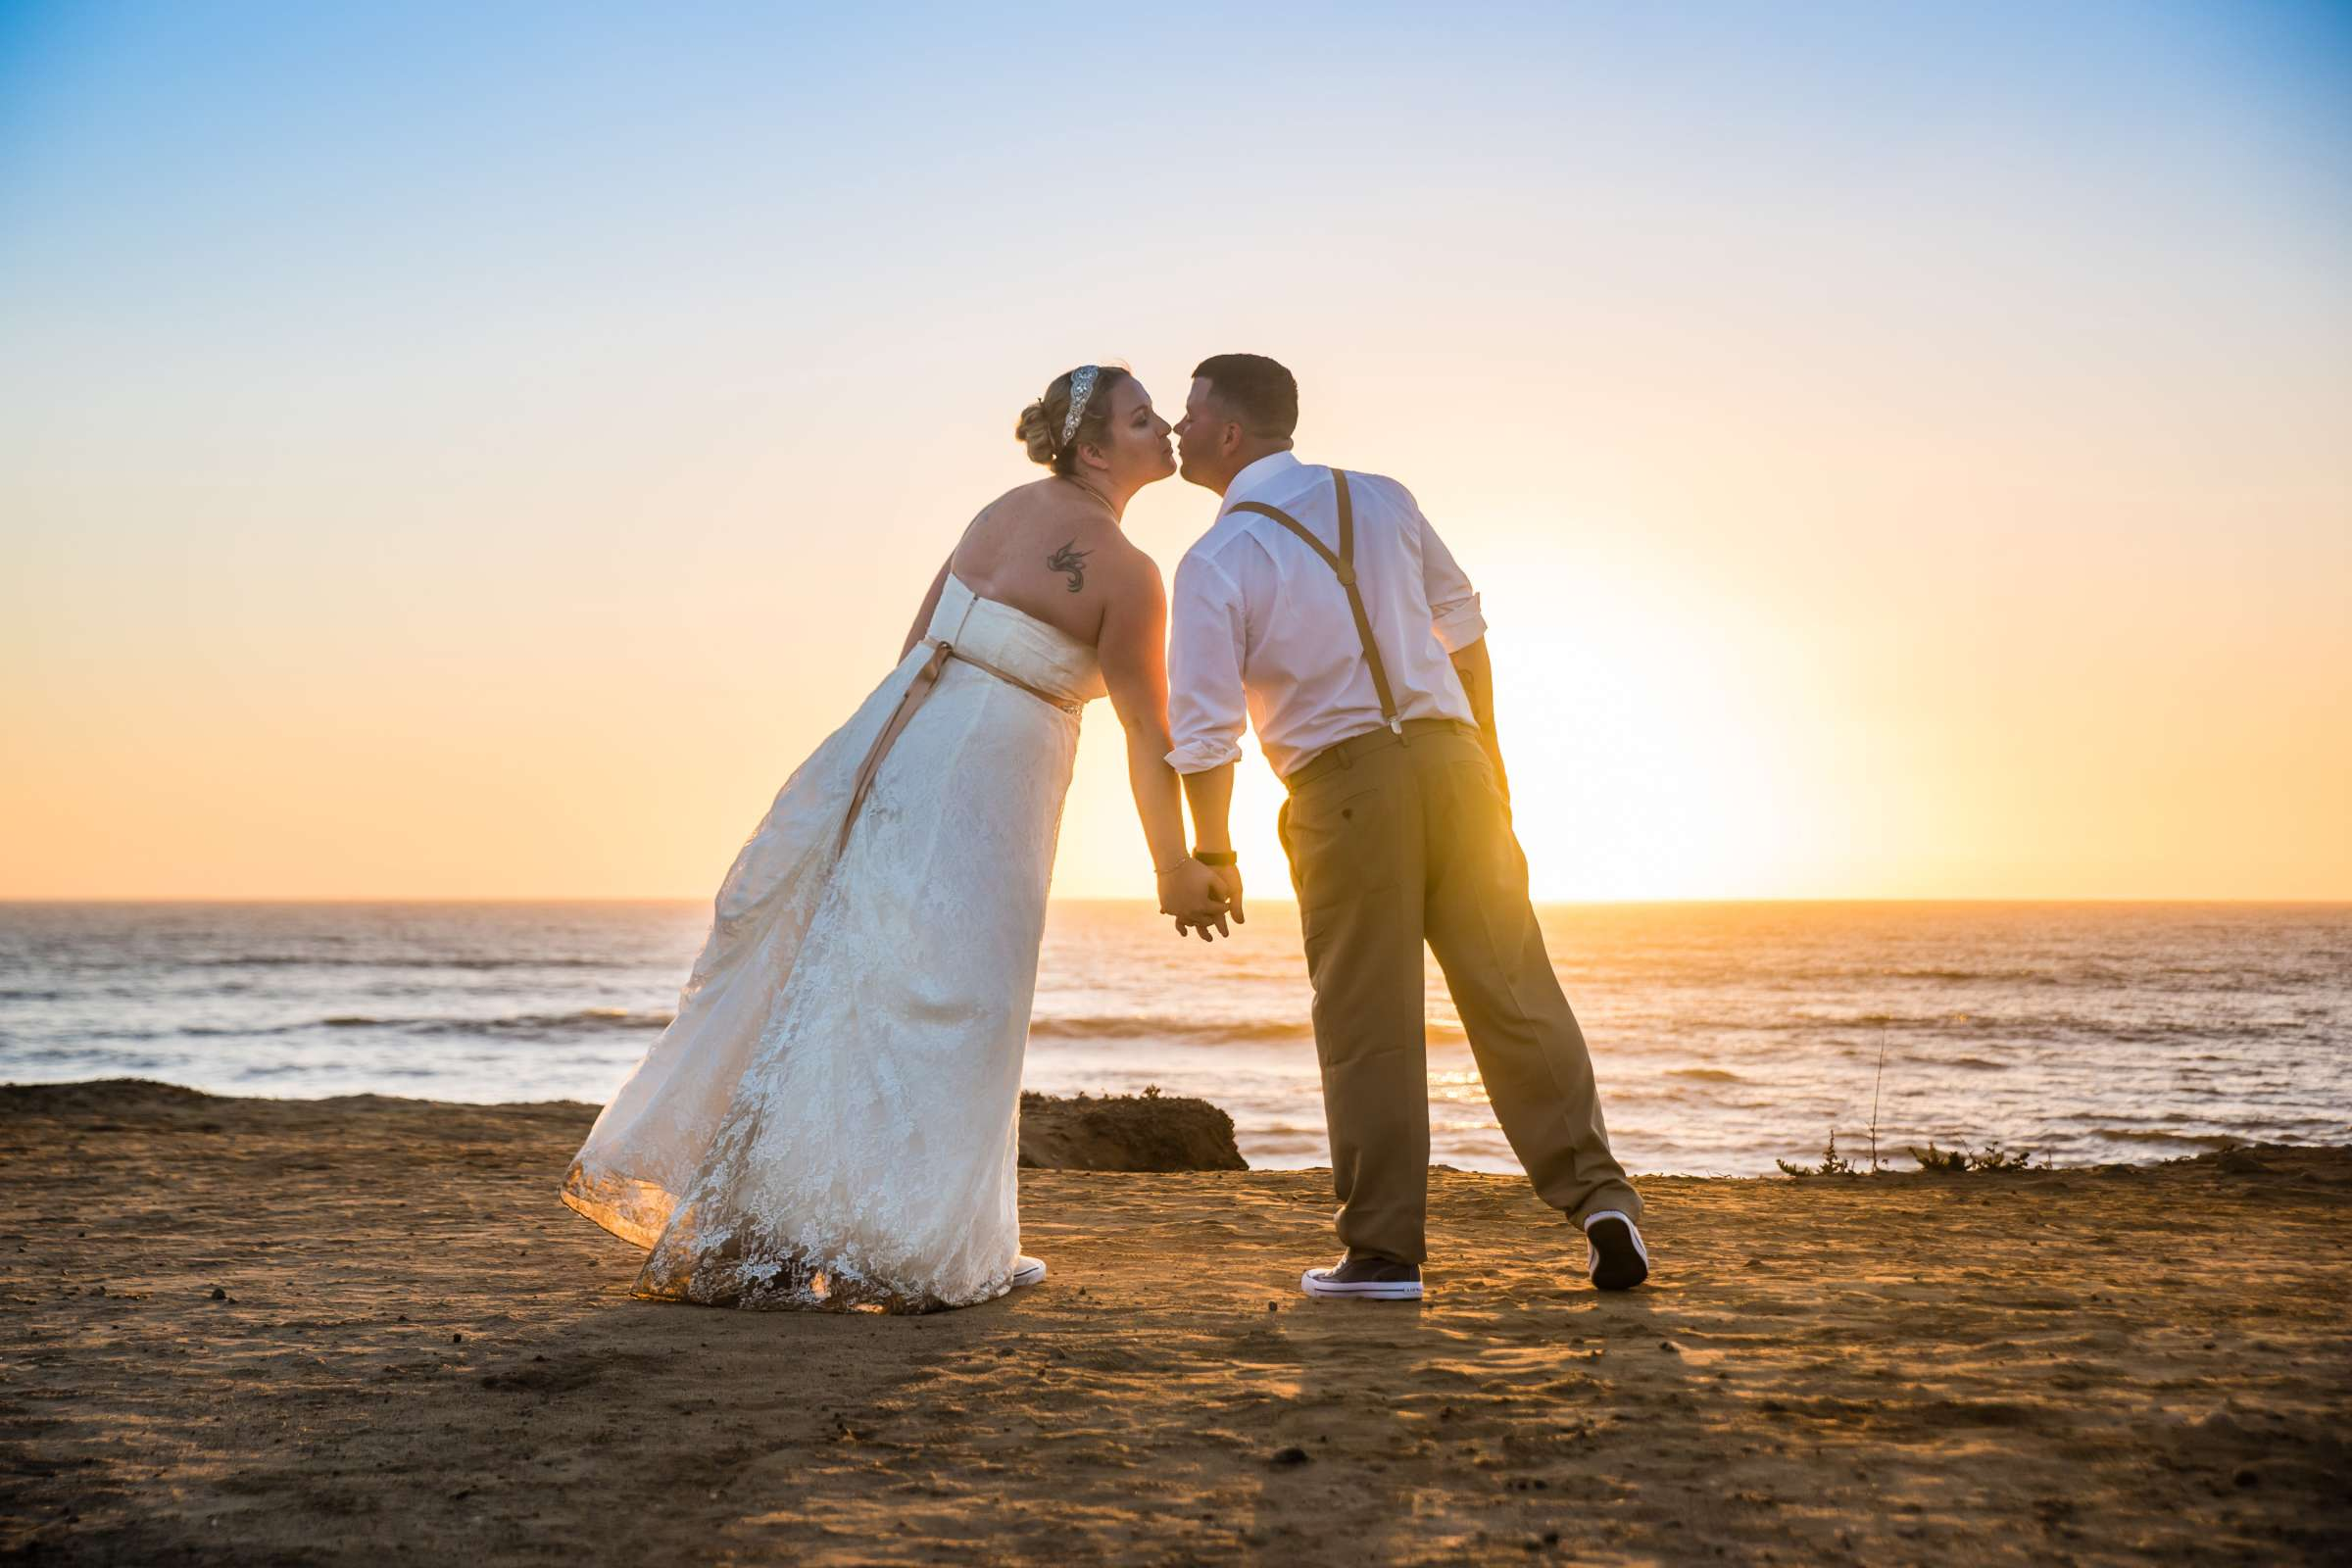 The Inn at Sunset Cliffs Wedding, Melinda and Benjamin Wedding Photo #72 by True Photography